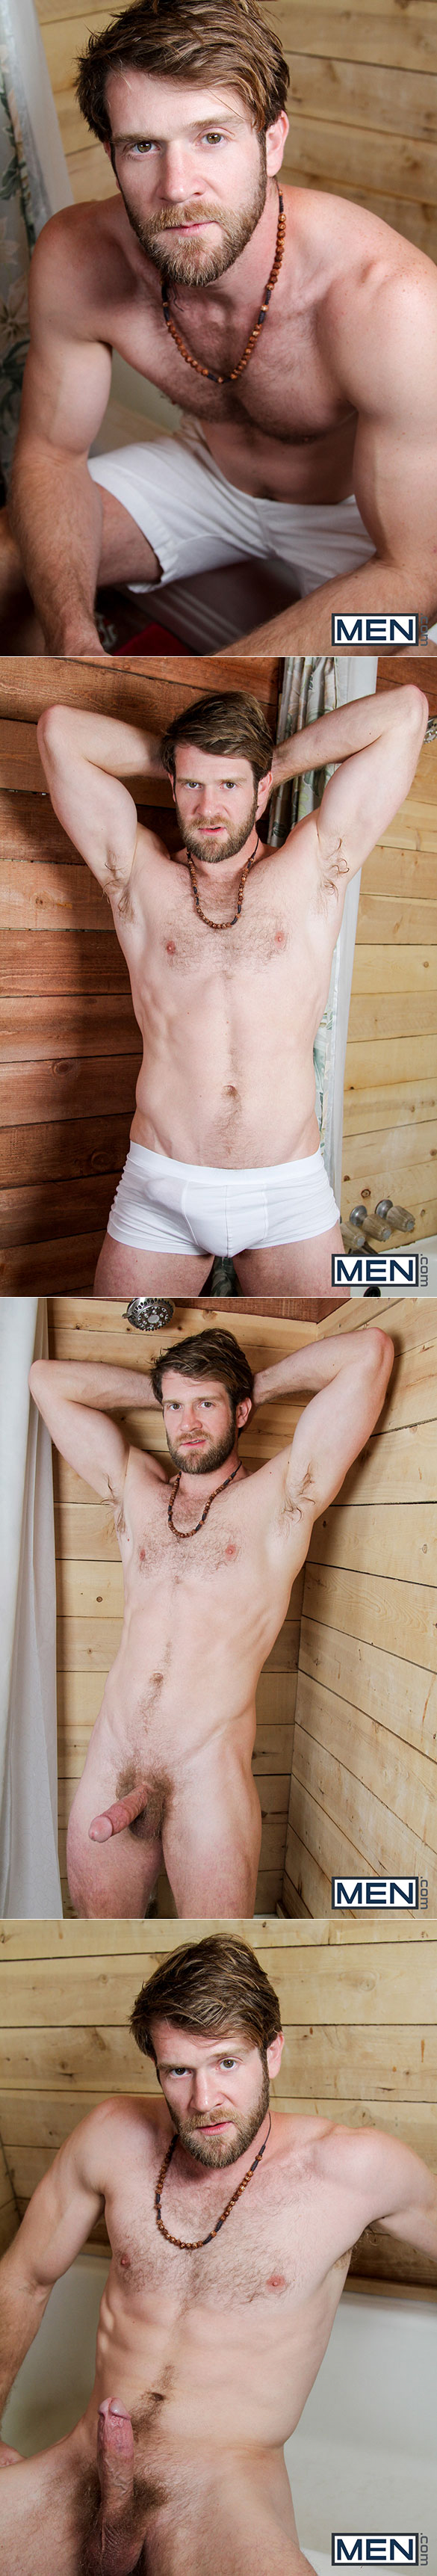 "Men.com: Colby Keller fucks Roman Todd in ""The Cult, Part 2"""